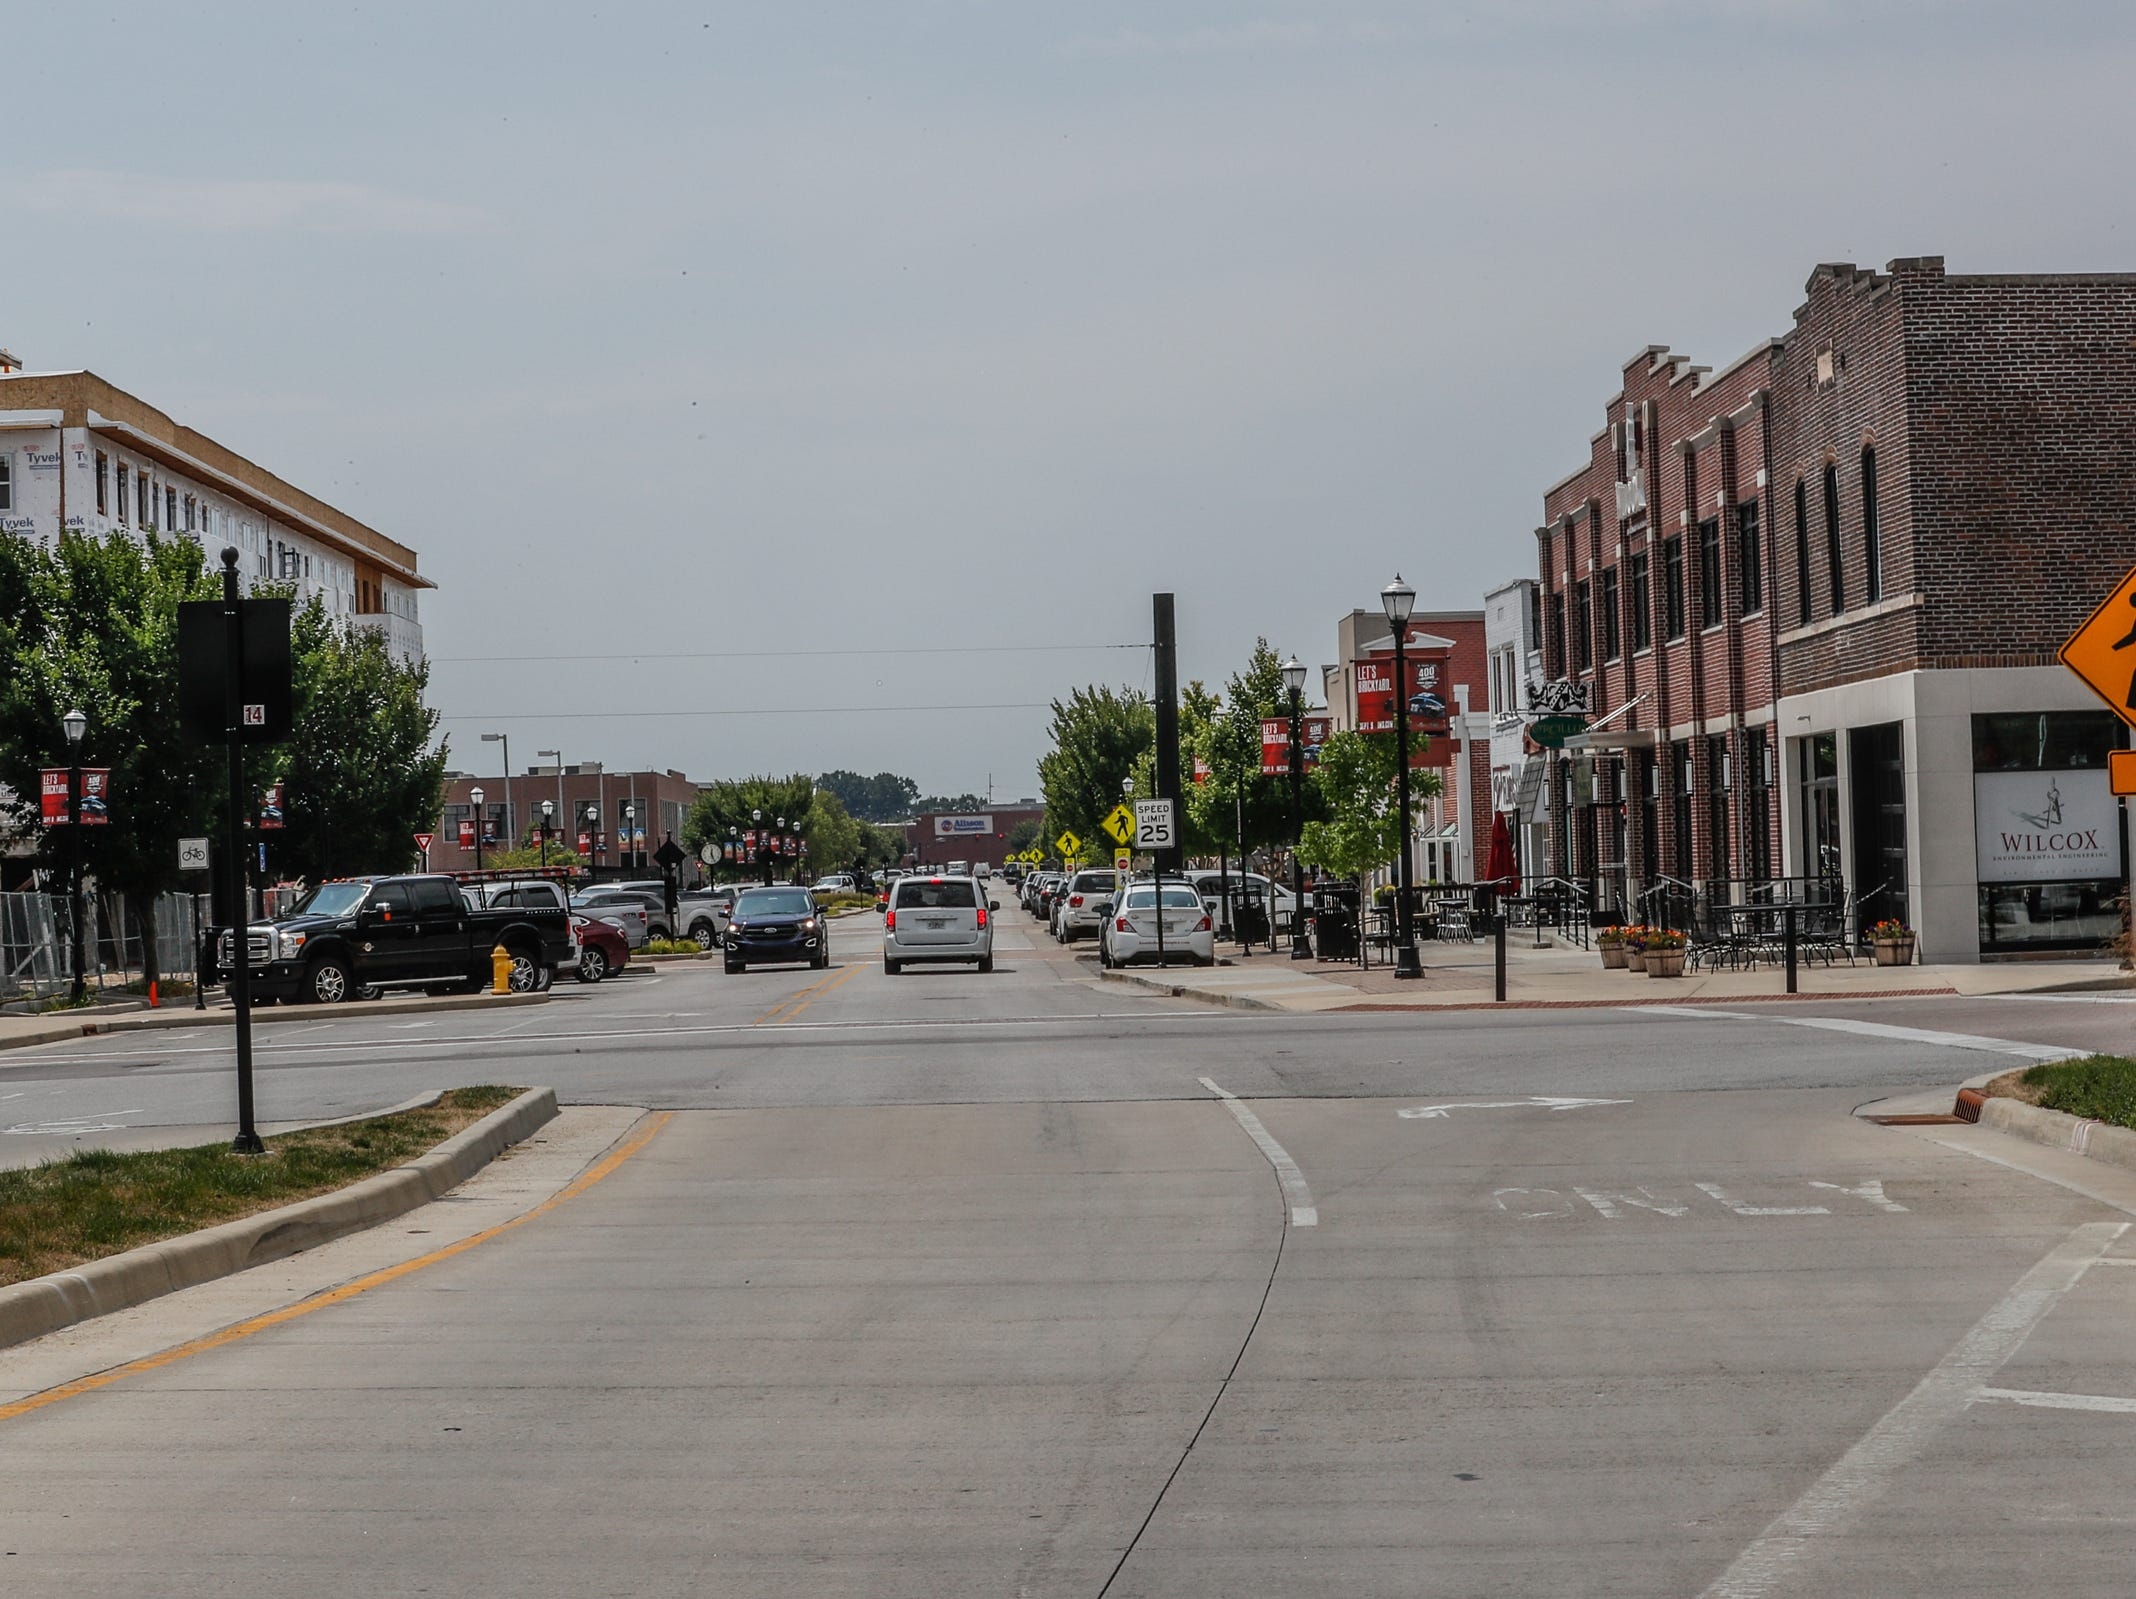 View of Main Street  Speedway Indiana, shown here on Friday, Aug. 3, 2018.